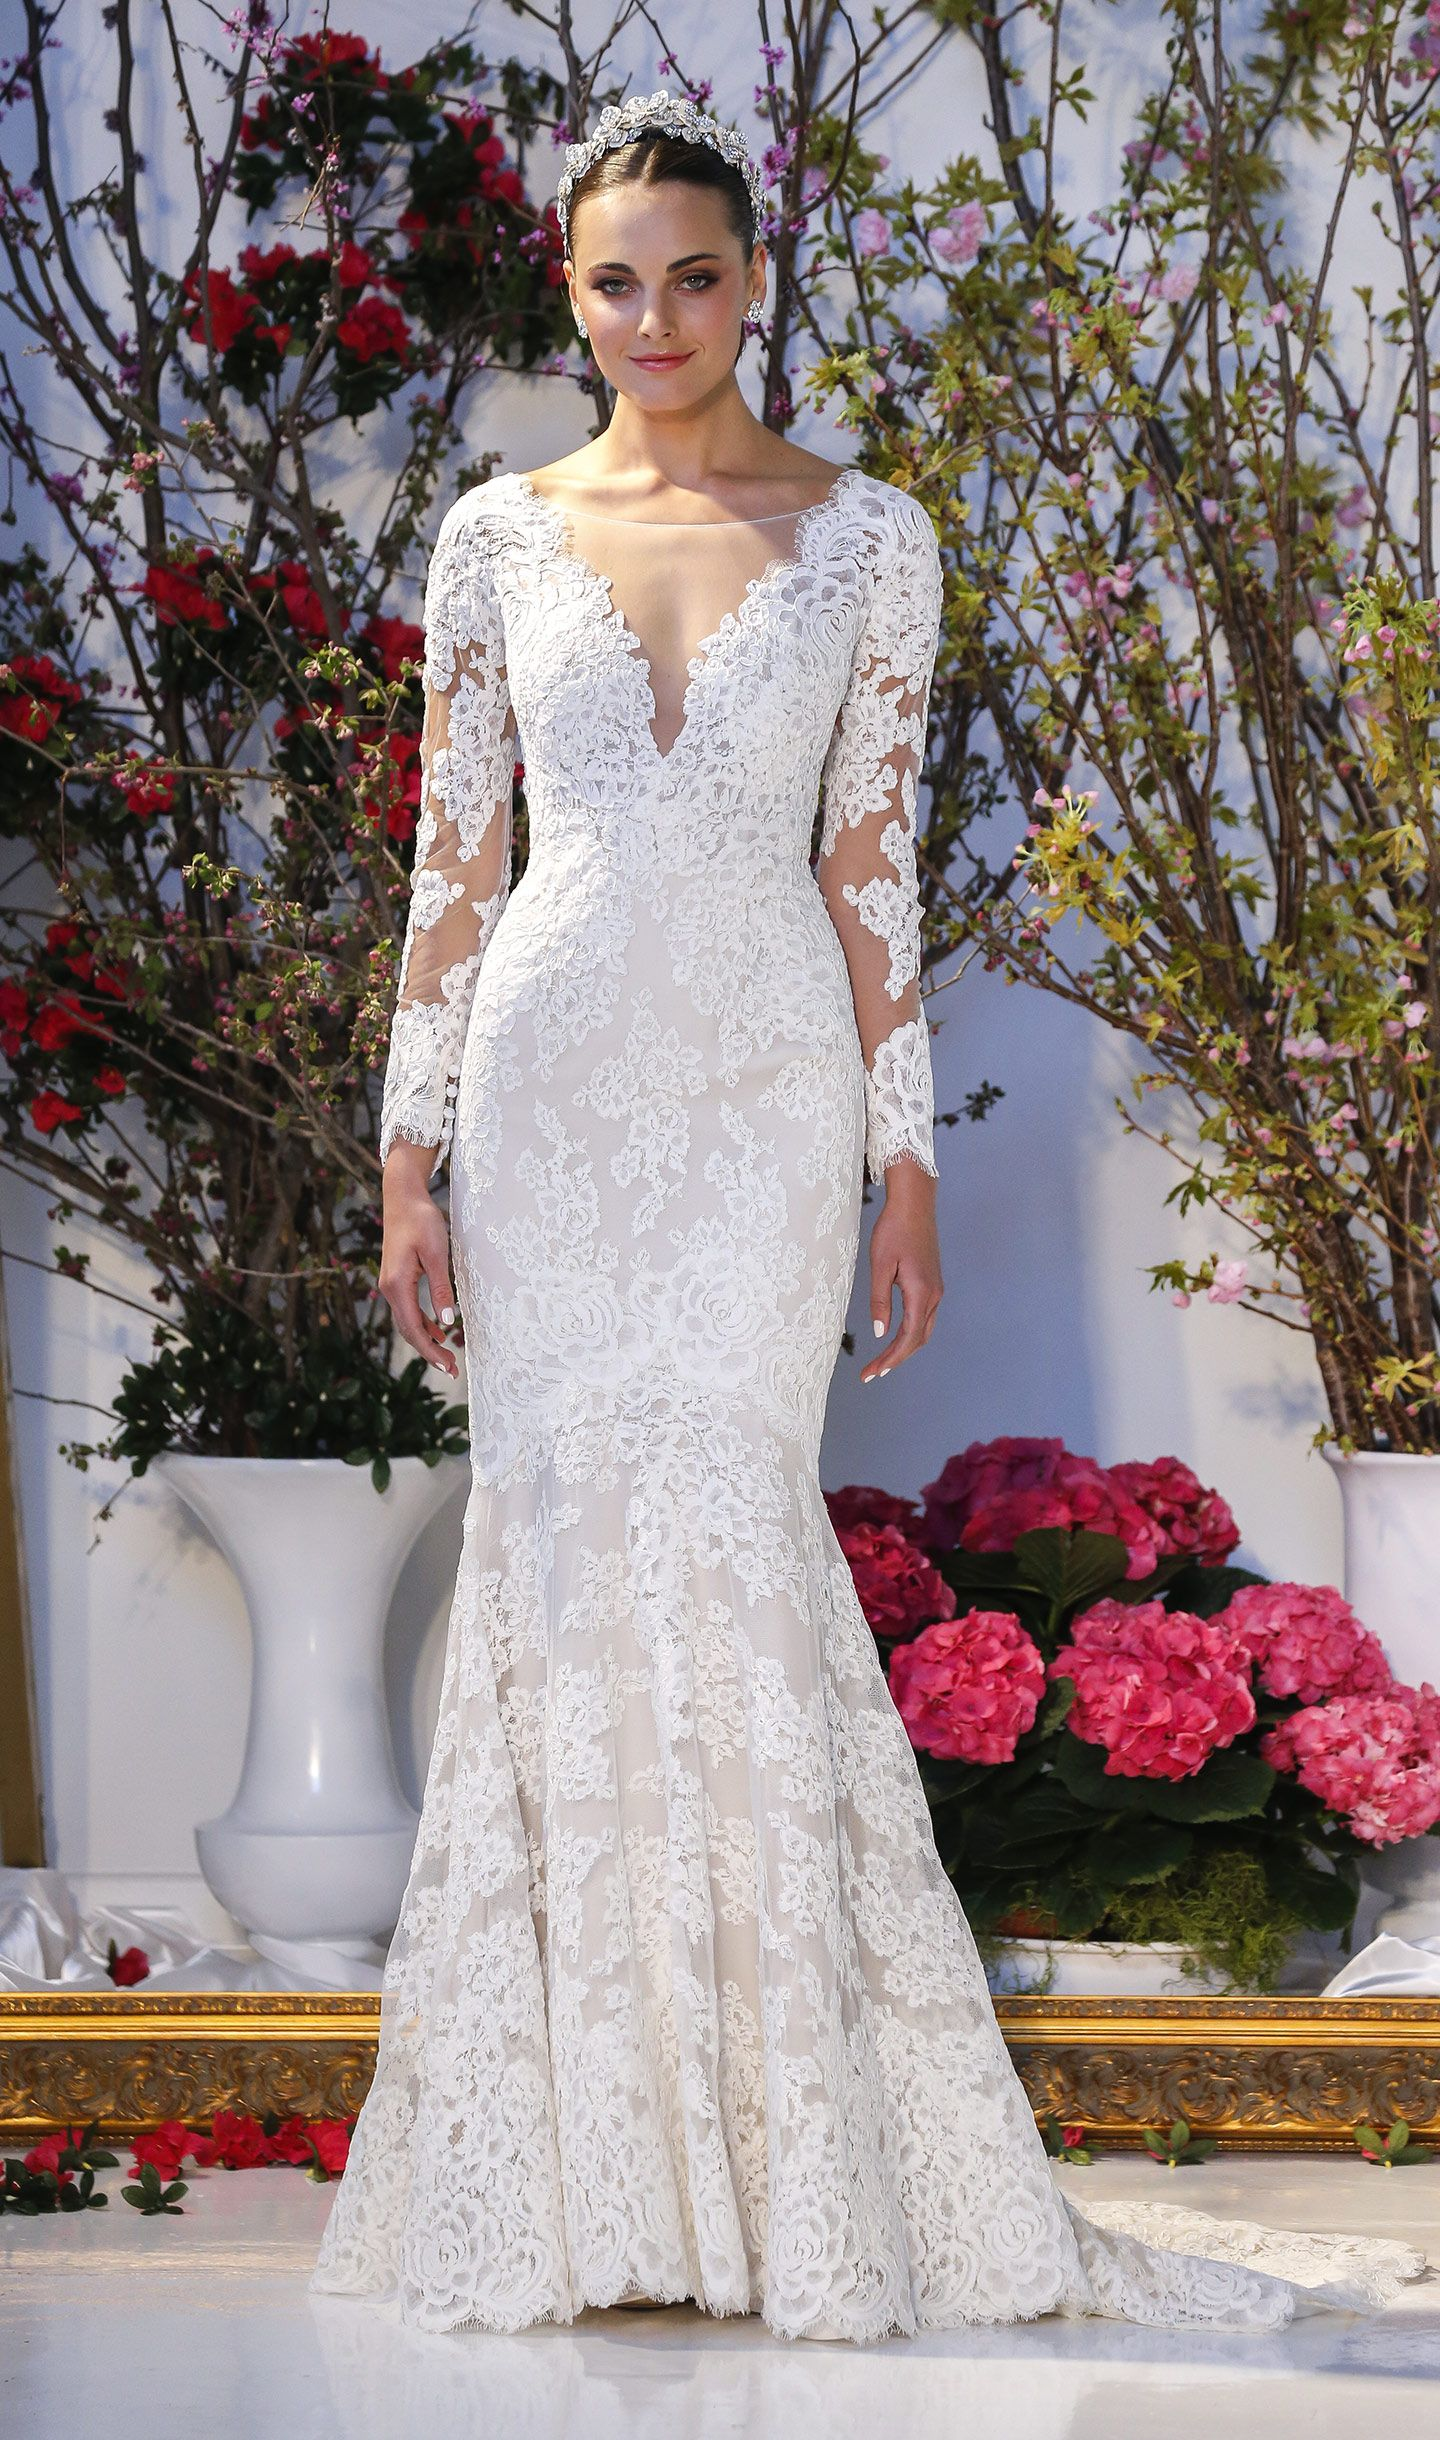 Pin by Cori Amanda on Wedding Dresses  d035a64bbd6